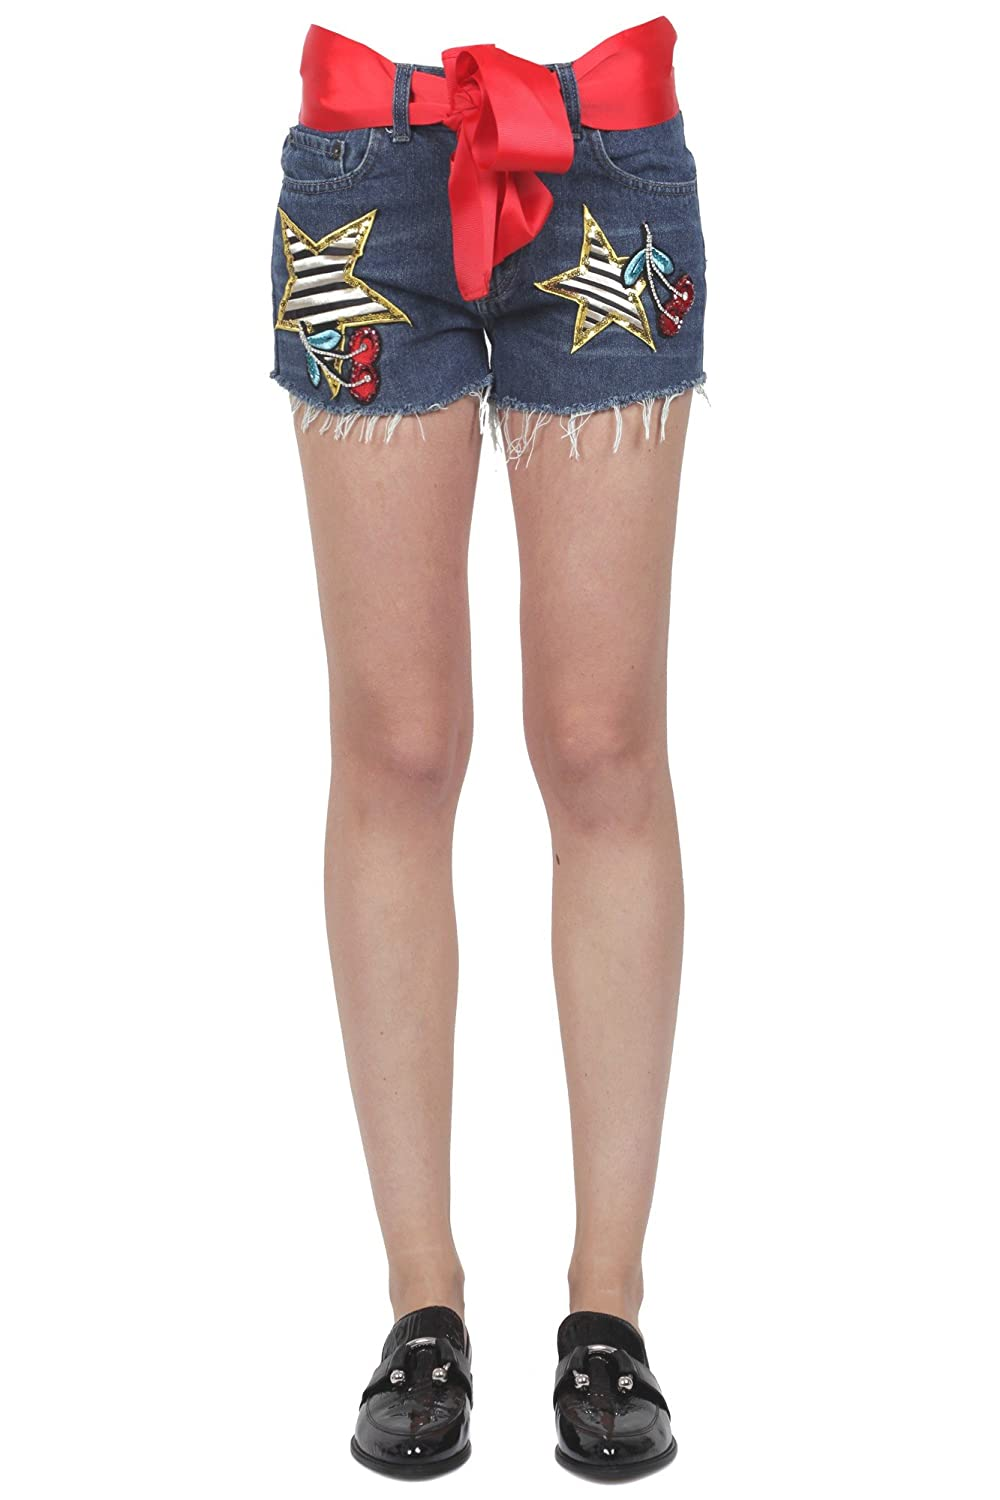 5 PROGRESS Women's 310268096 Blue Cotton Shorts